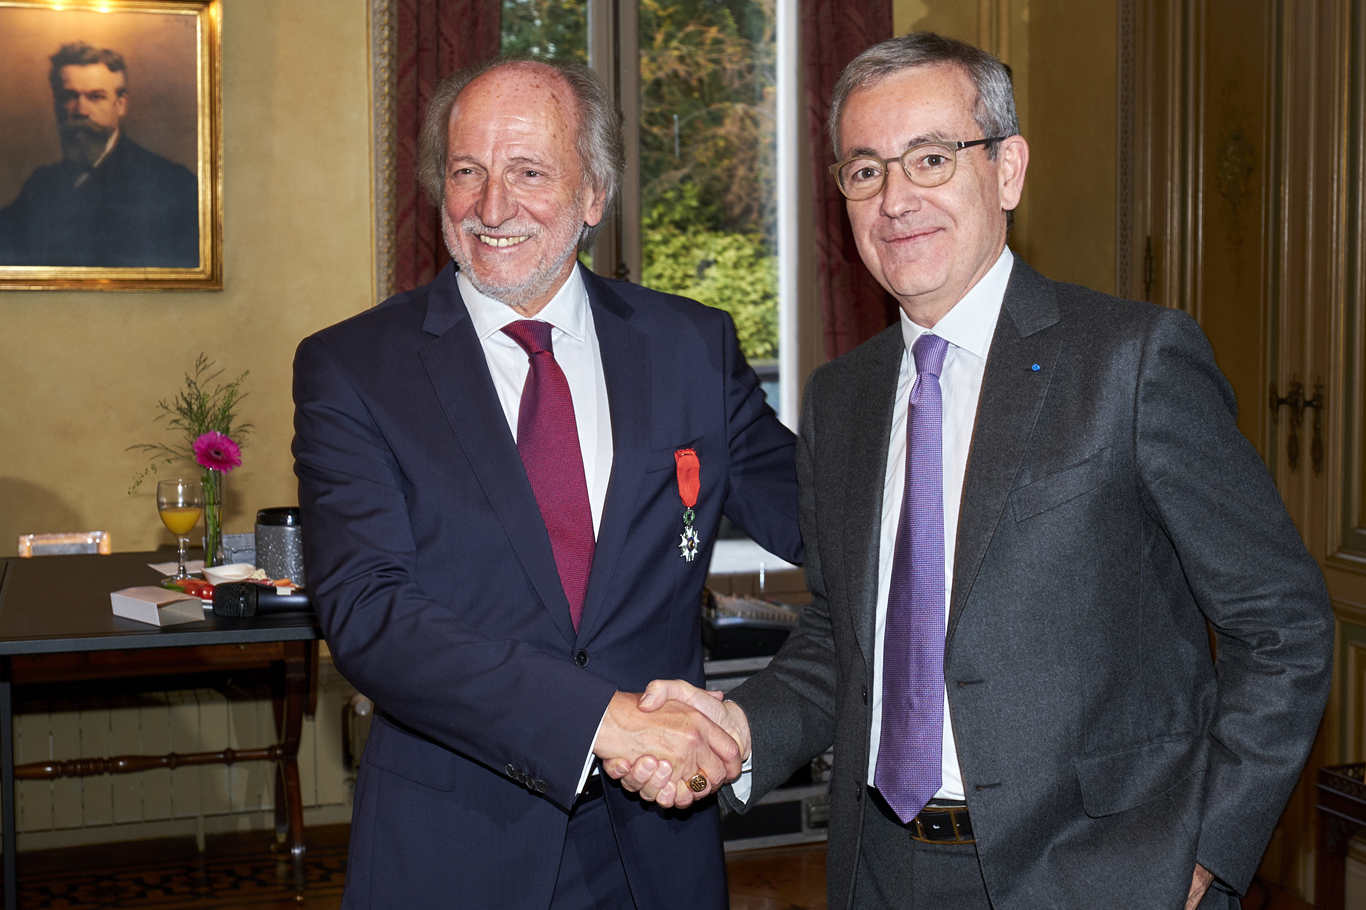 Patrick Maestro  and Jean-Pierre Clamadieu shaking hands